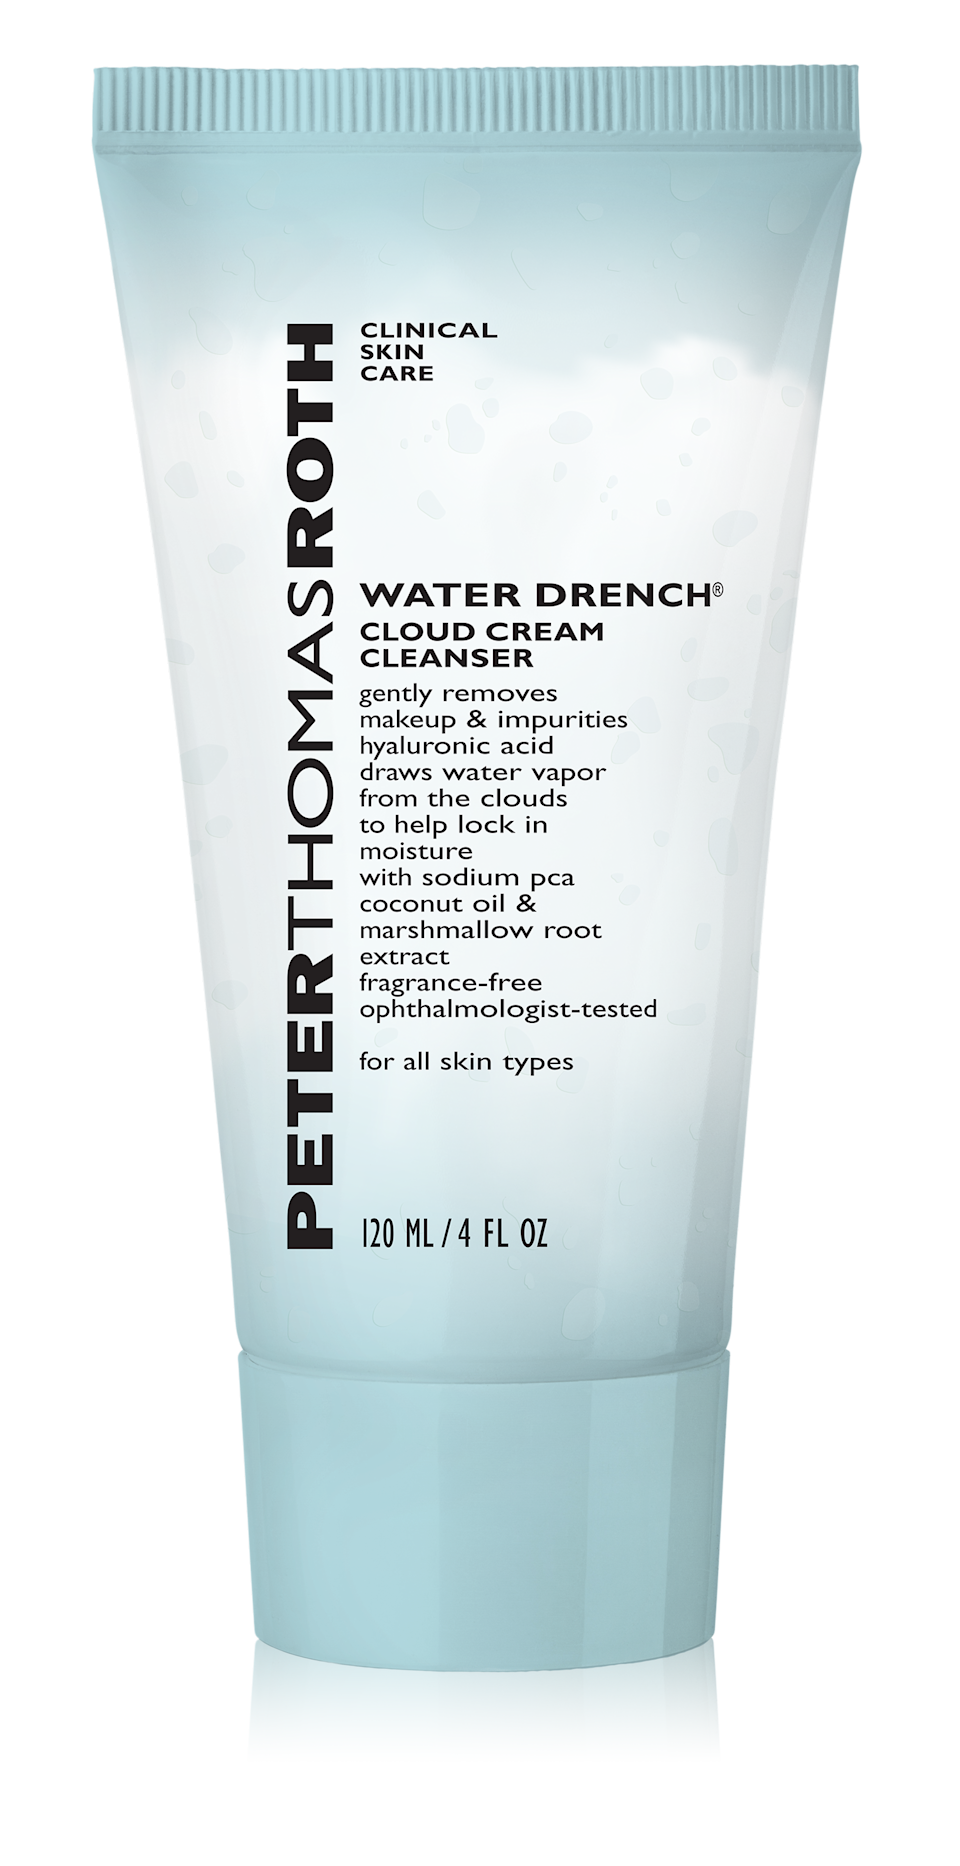 """<p><strong>— PAID —</strong></p><p>Some cleansers can be drying — but this isn't one of them. Featuring hyaluronic acid and natural coconut oil, this ultra-moisturizing makeup remover won't strip your skin of its natural oils. The best part? The creamy cleanser is fragrance-free, so it's safe for those with even the most sensitive skin.</p><p><strong>Peter Thomas Roth</strong> Water Drench Cloud Cream Cleanser, $28, available at <a href=""""http://seph.me/2wnVZxP"""" rel=""""nofollow noopener"""" target=""""_blank"""" data-ylk=""""slk:Sephora"""" class=""""link rapid-noclick-resp"""">Sephora</a>.</p>"""